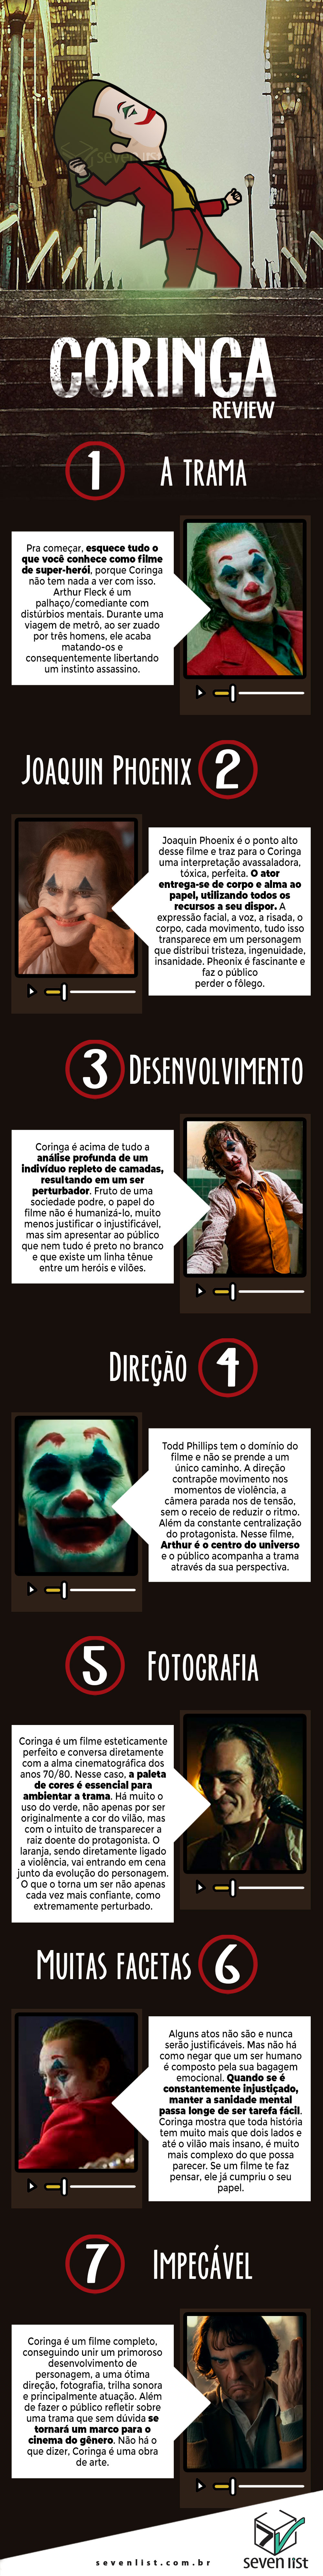 seven list crítica do filme Coringa Joker